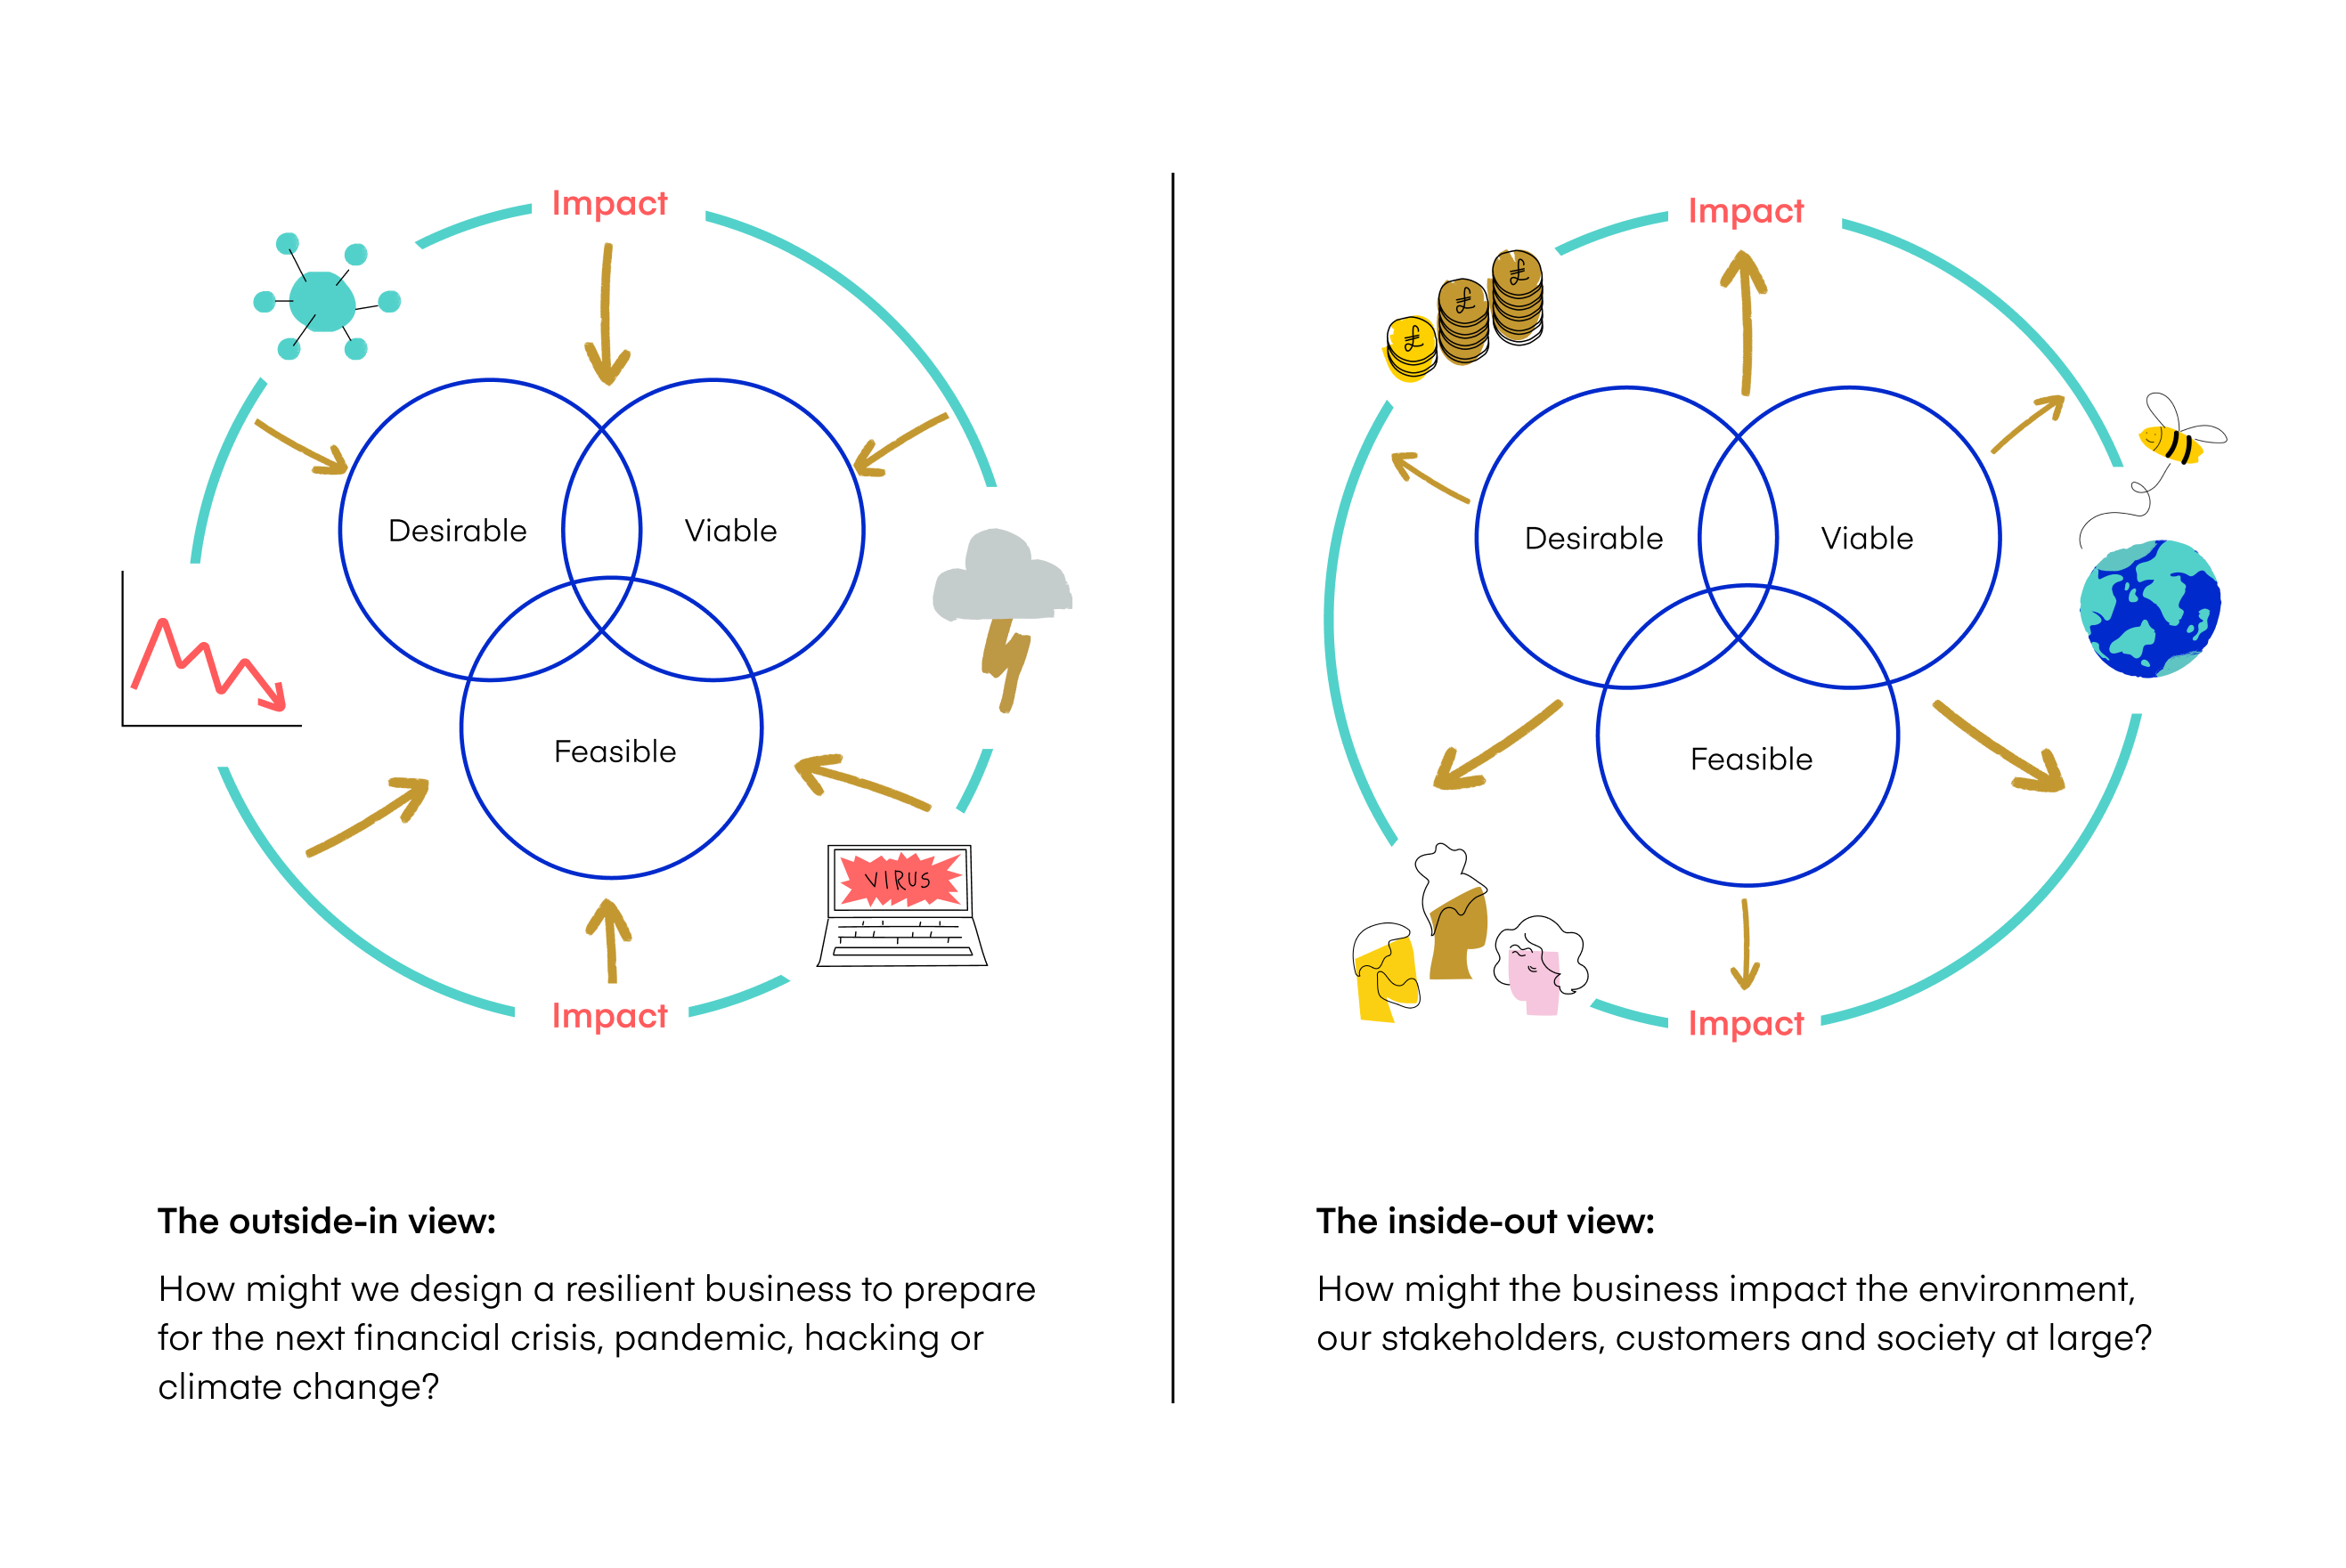 Inside-out view and outside-in view framework for designing sustainable businesses